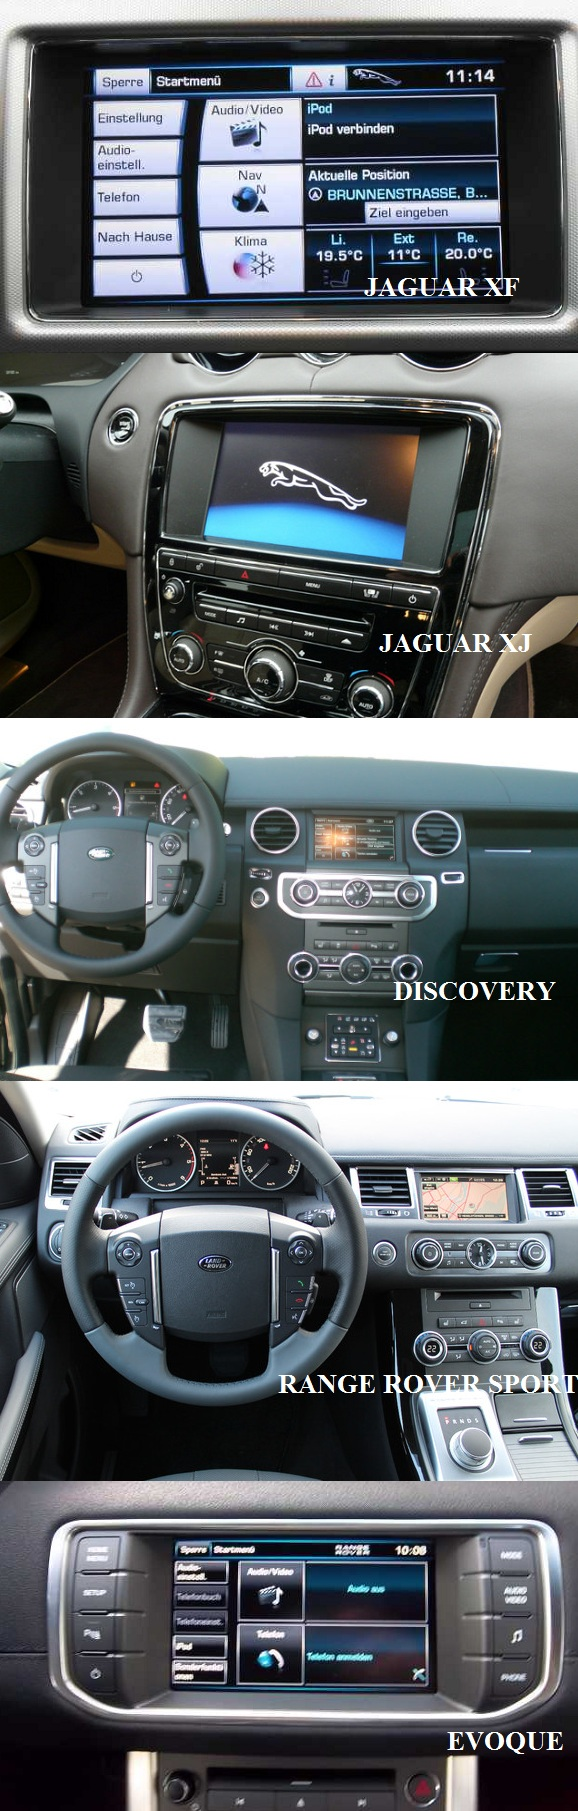 compatibilitate video in miscare jaguar range rover